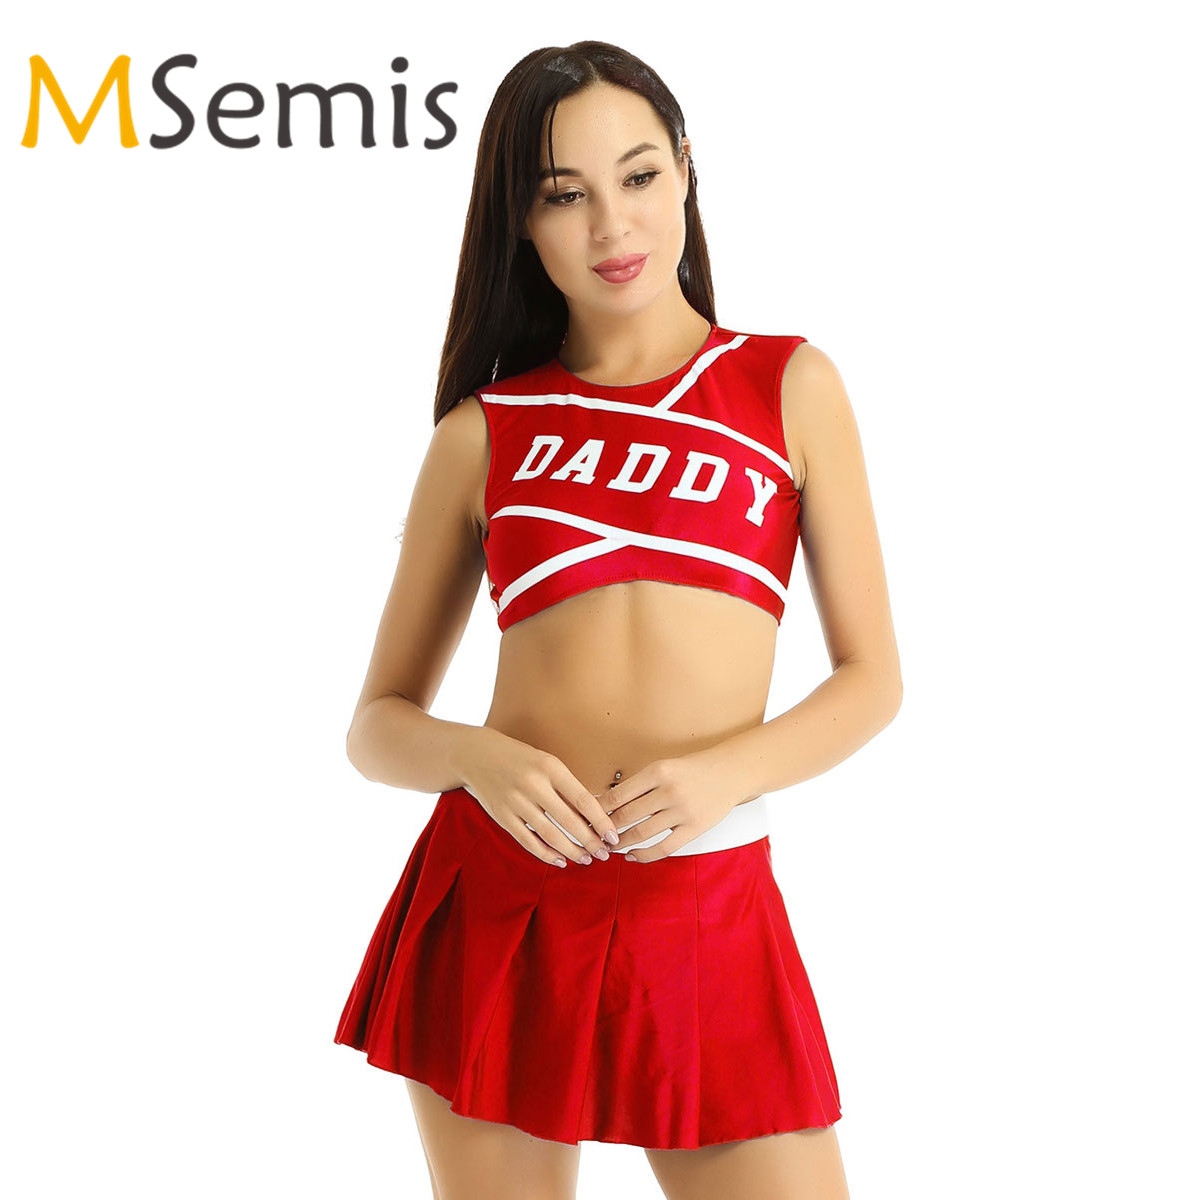 Women's Charming Cheerleader Cosplay Costume Round Neck Crop Top With Mini Pleated Skirt Cheerleader Dancewear Sports Uniform